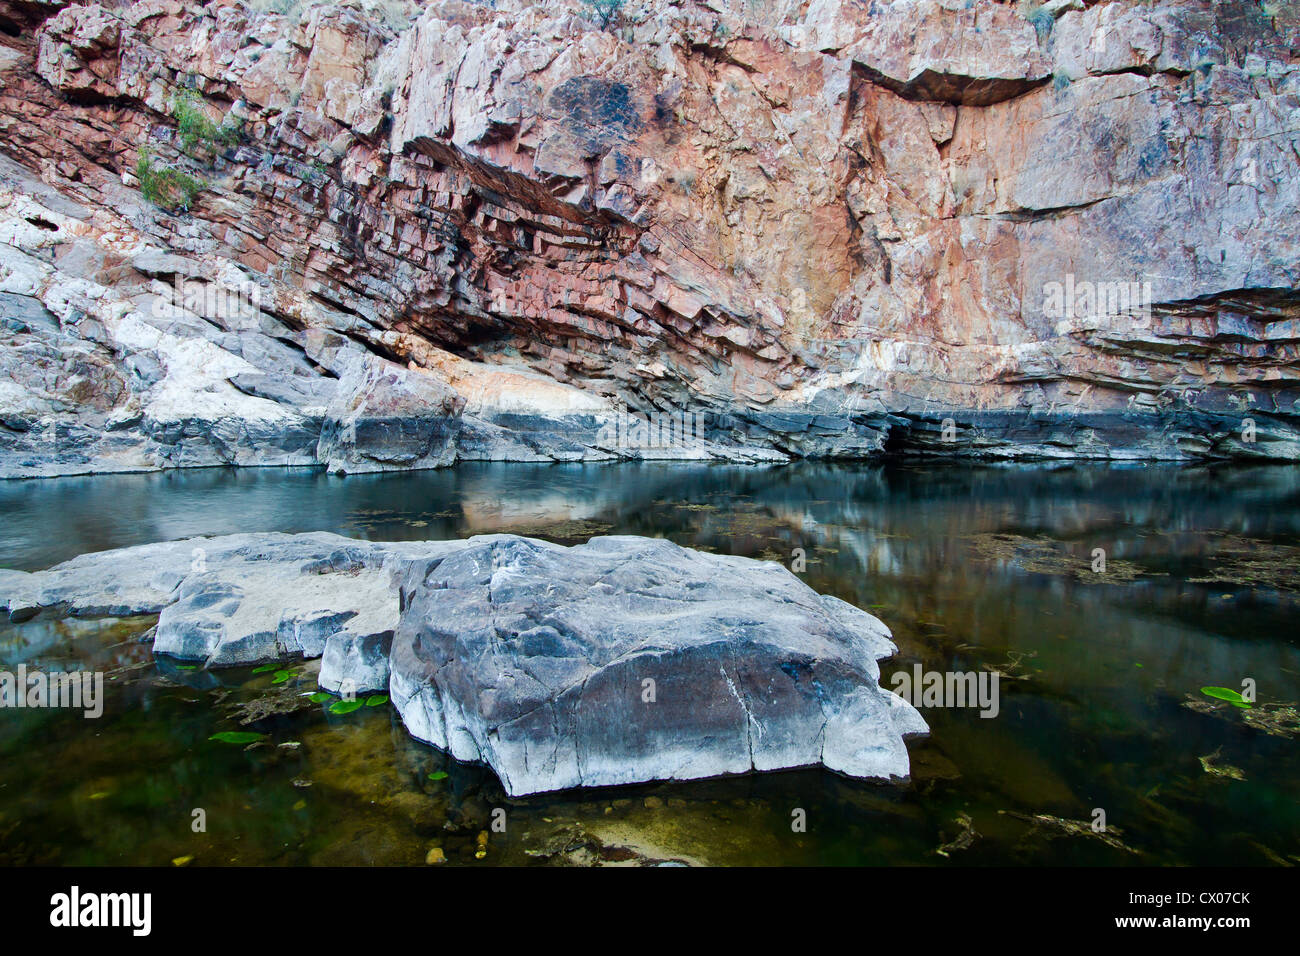 Ormiston Gorge, West Macdonell Ranges, NT, Australia. - Stock Image